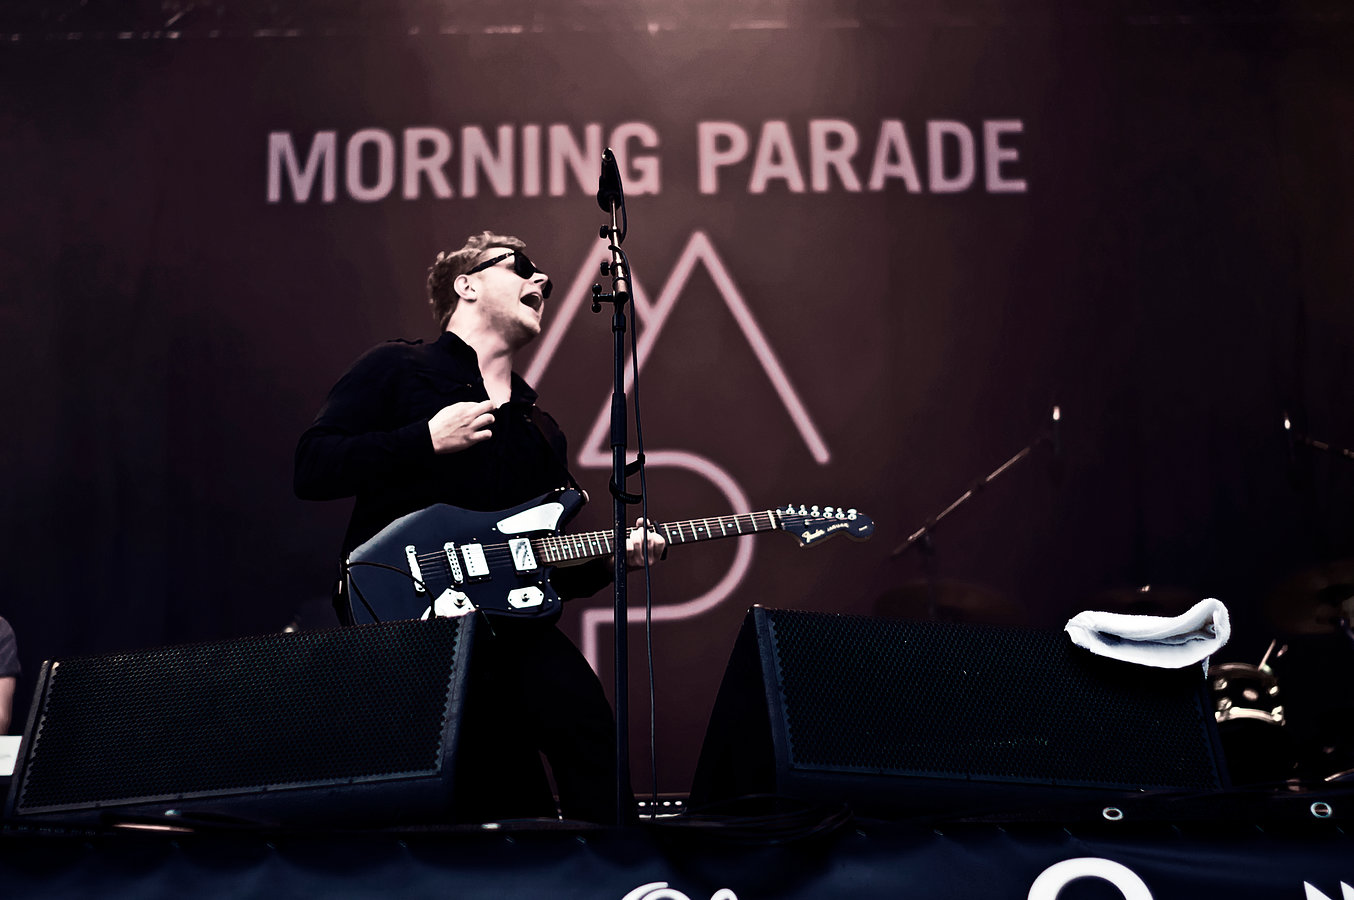 Steve Sparrow - MORNING PARADE, Rock am Ring, Germany